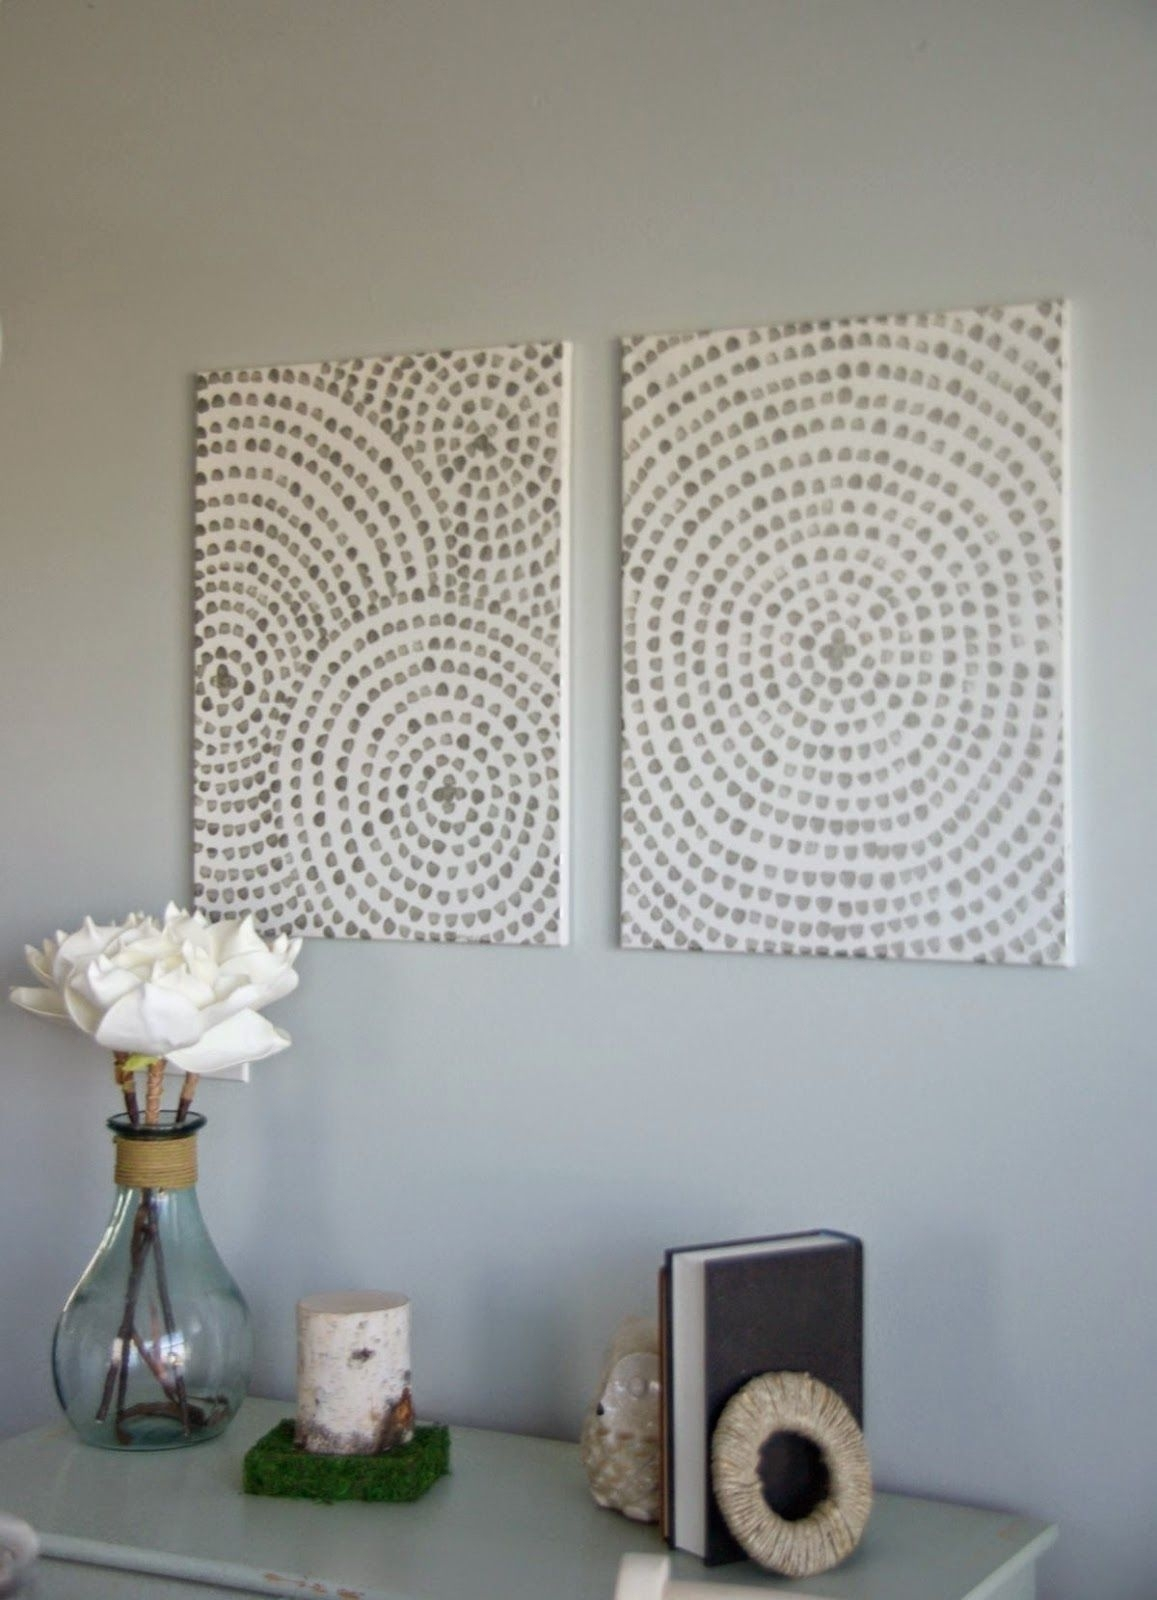 Easy Canvas Wall Art, Making Diy Wall Art Is Simple And Inexpensive With Regard To Recent Inexpensive Wall Art (Gallery 14 of 20)